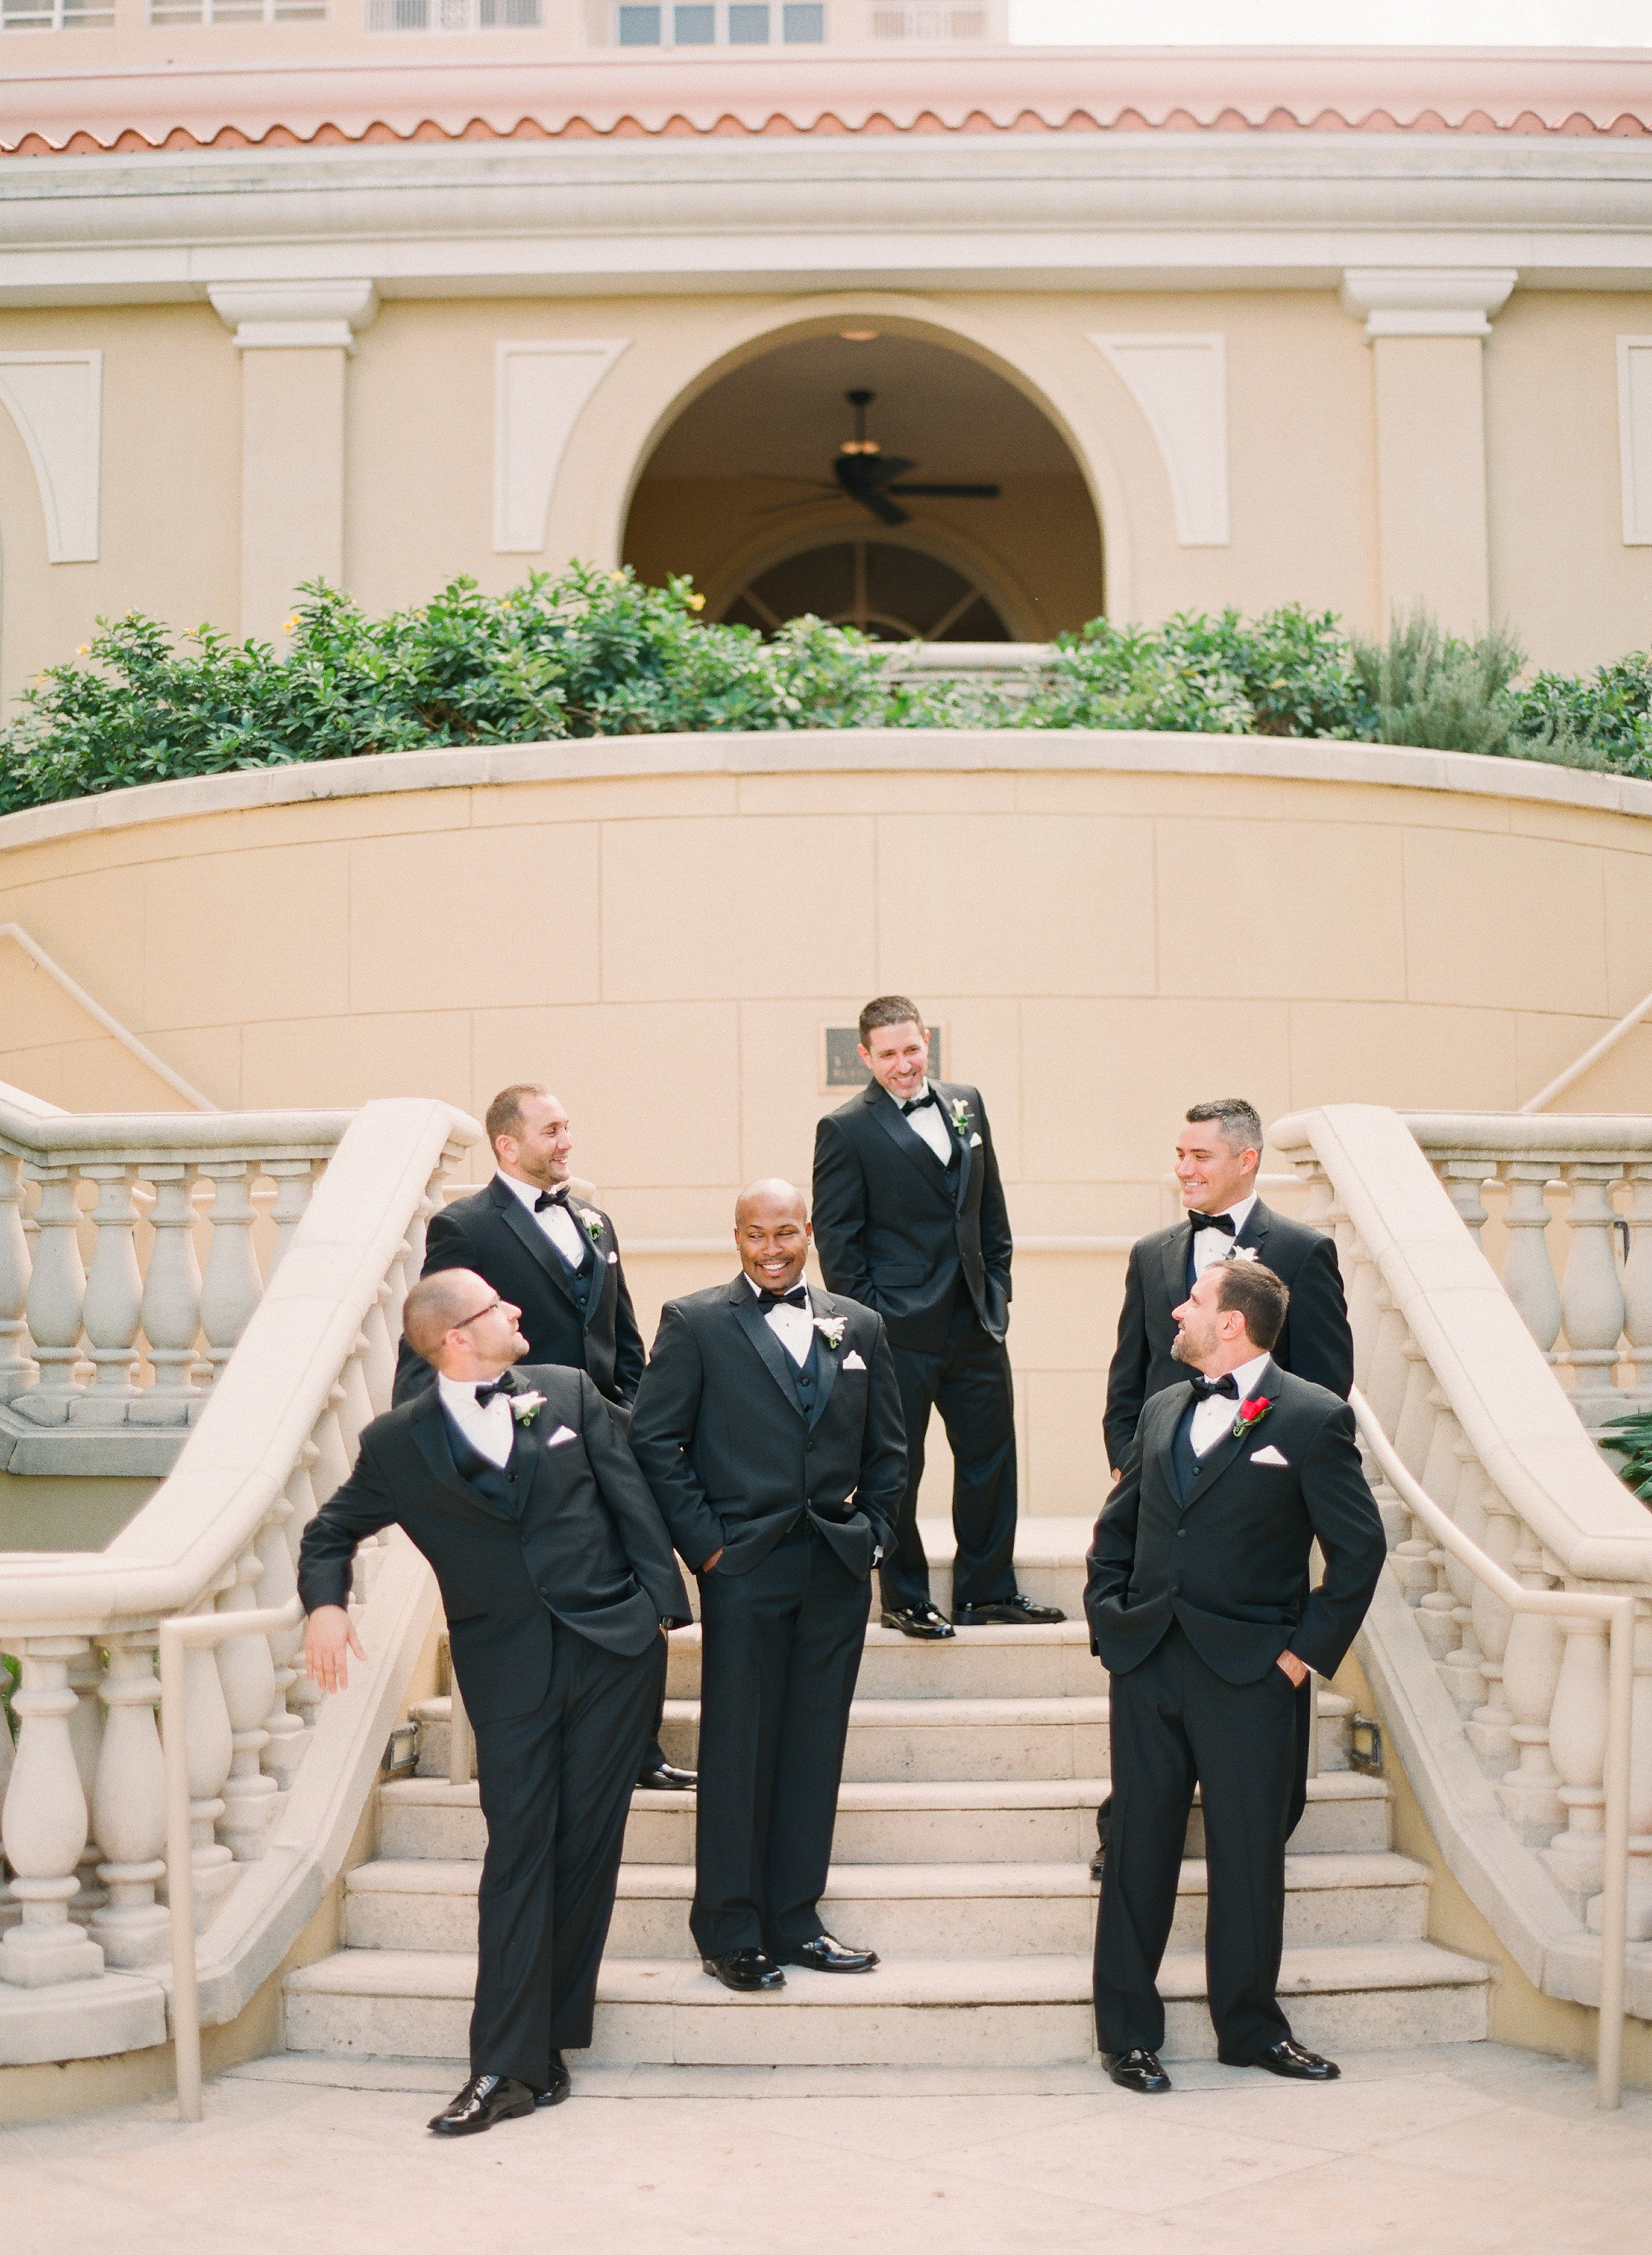 Destination Wedding Photographer Lexia Frank is a film photographer on the west coast specializing in luxury weddings and fine art film photography. In this article she writes a letter to the groom, and talks about the groom's role in photography. Groomsmen pose at the Ritz Carlton in Florida weddingwww.lexiafrank.com